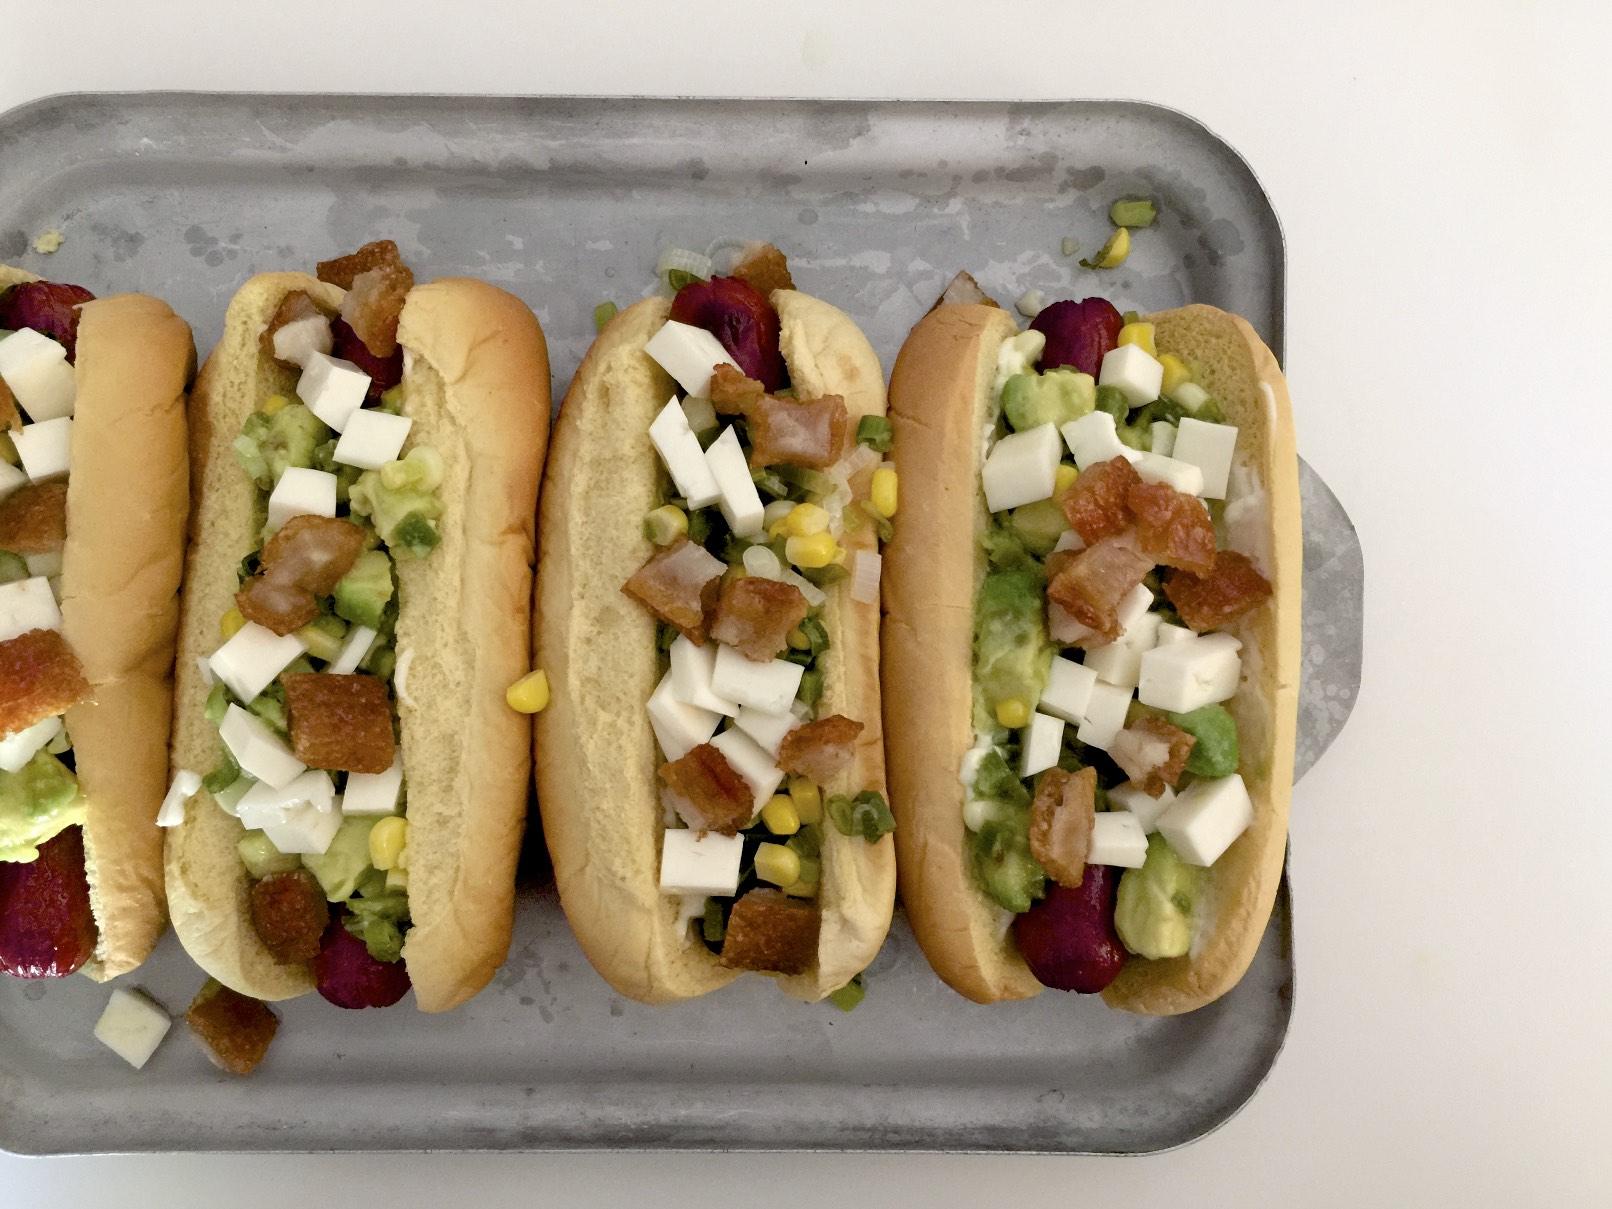 Exquisite Dogs I Decide If This Post Is Too Late Our So Kind Hot Dogs With Day Post Or Too Earlyfor My Mor Was Both Queso Fresco Hungry Sofia Avocado Seed Most Dogs Avocado Costume bark post Avocado For Dogs